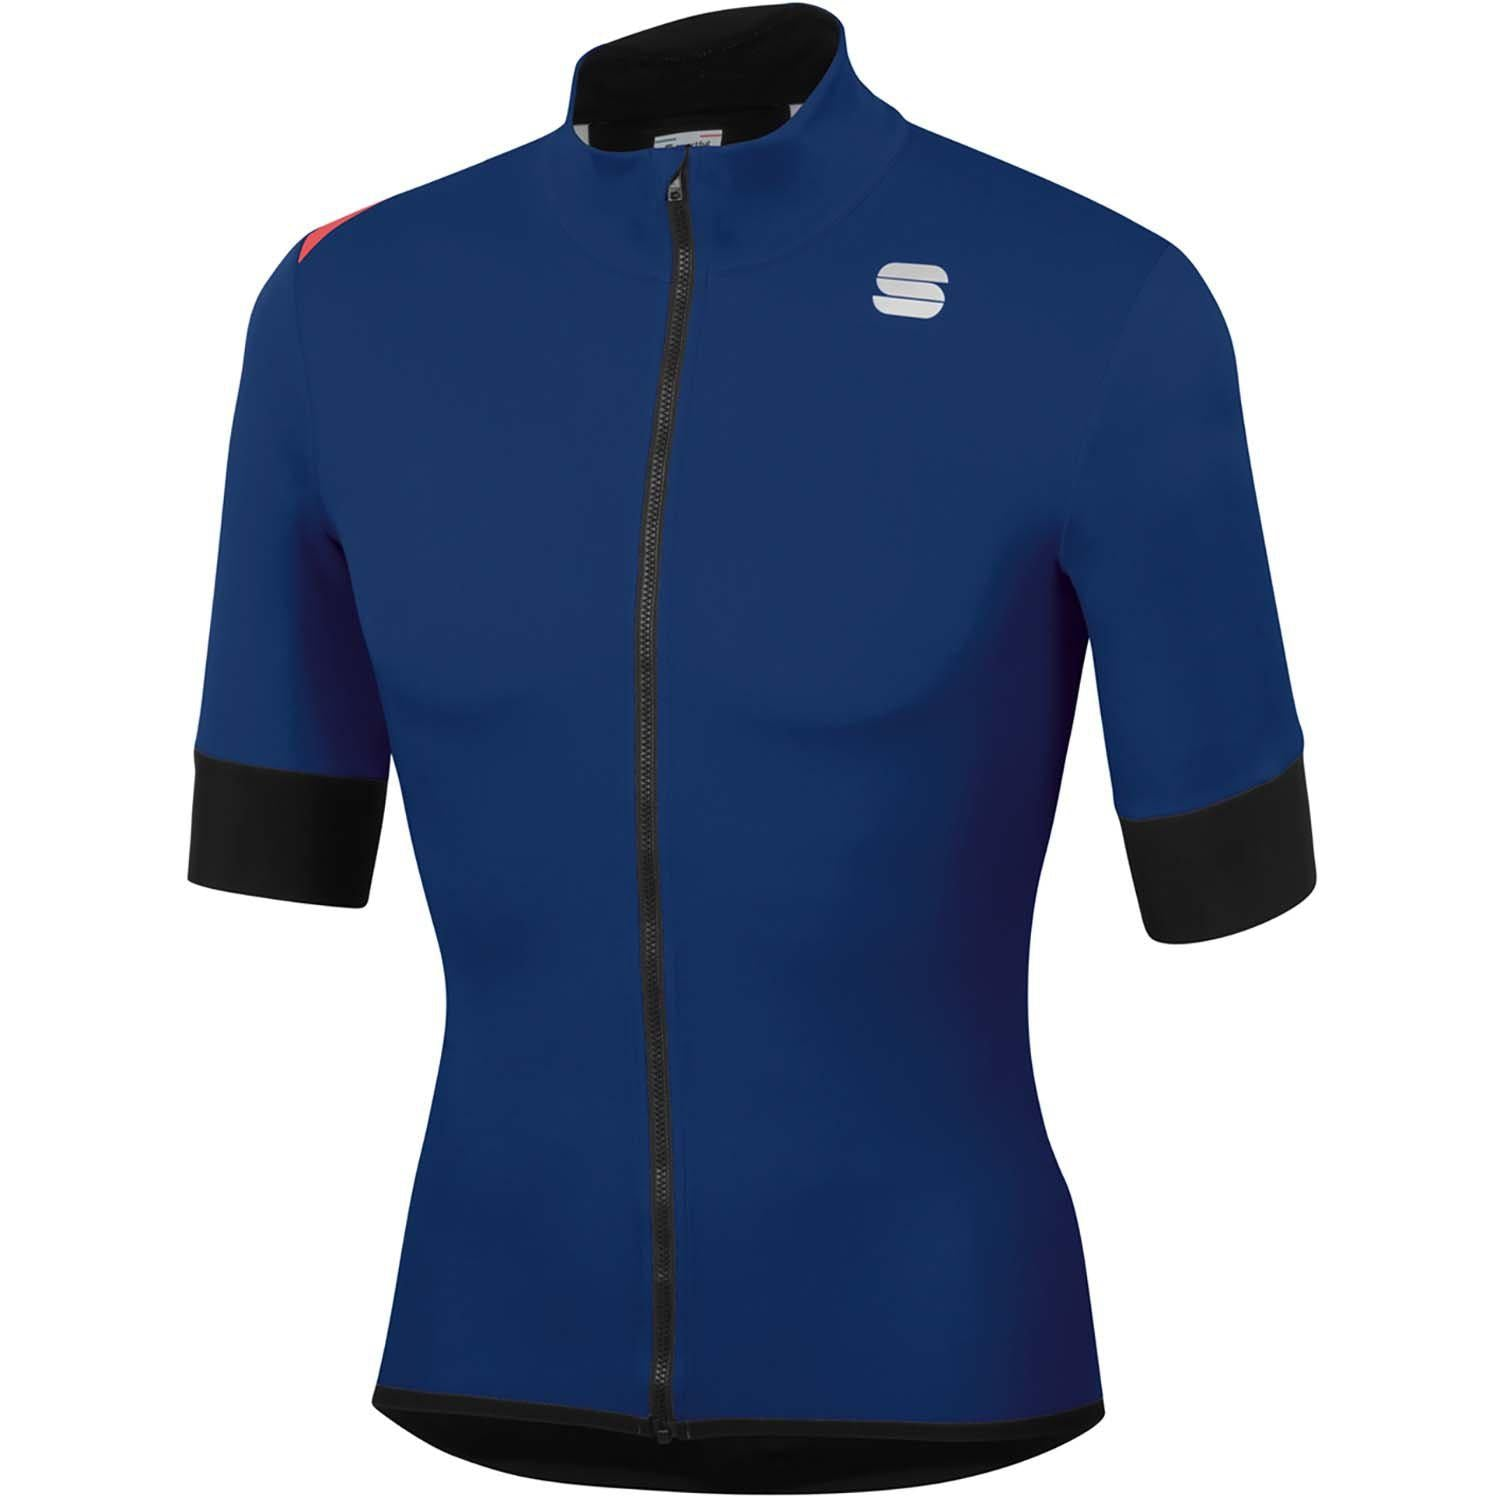 Sportful-Sportful Fiandre Light NoRain Short Sleeve Jacket-Blue Twilight-S-SF200224332-saddleback-elite-performance-cycling